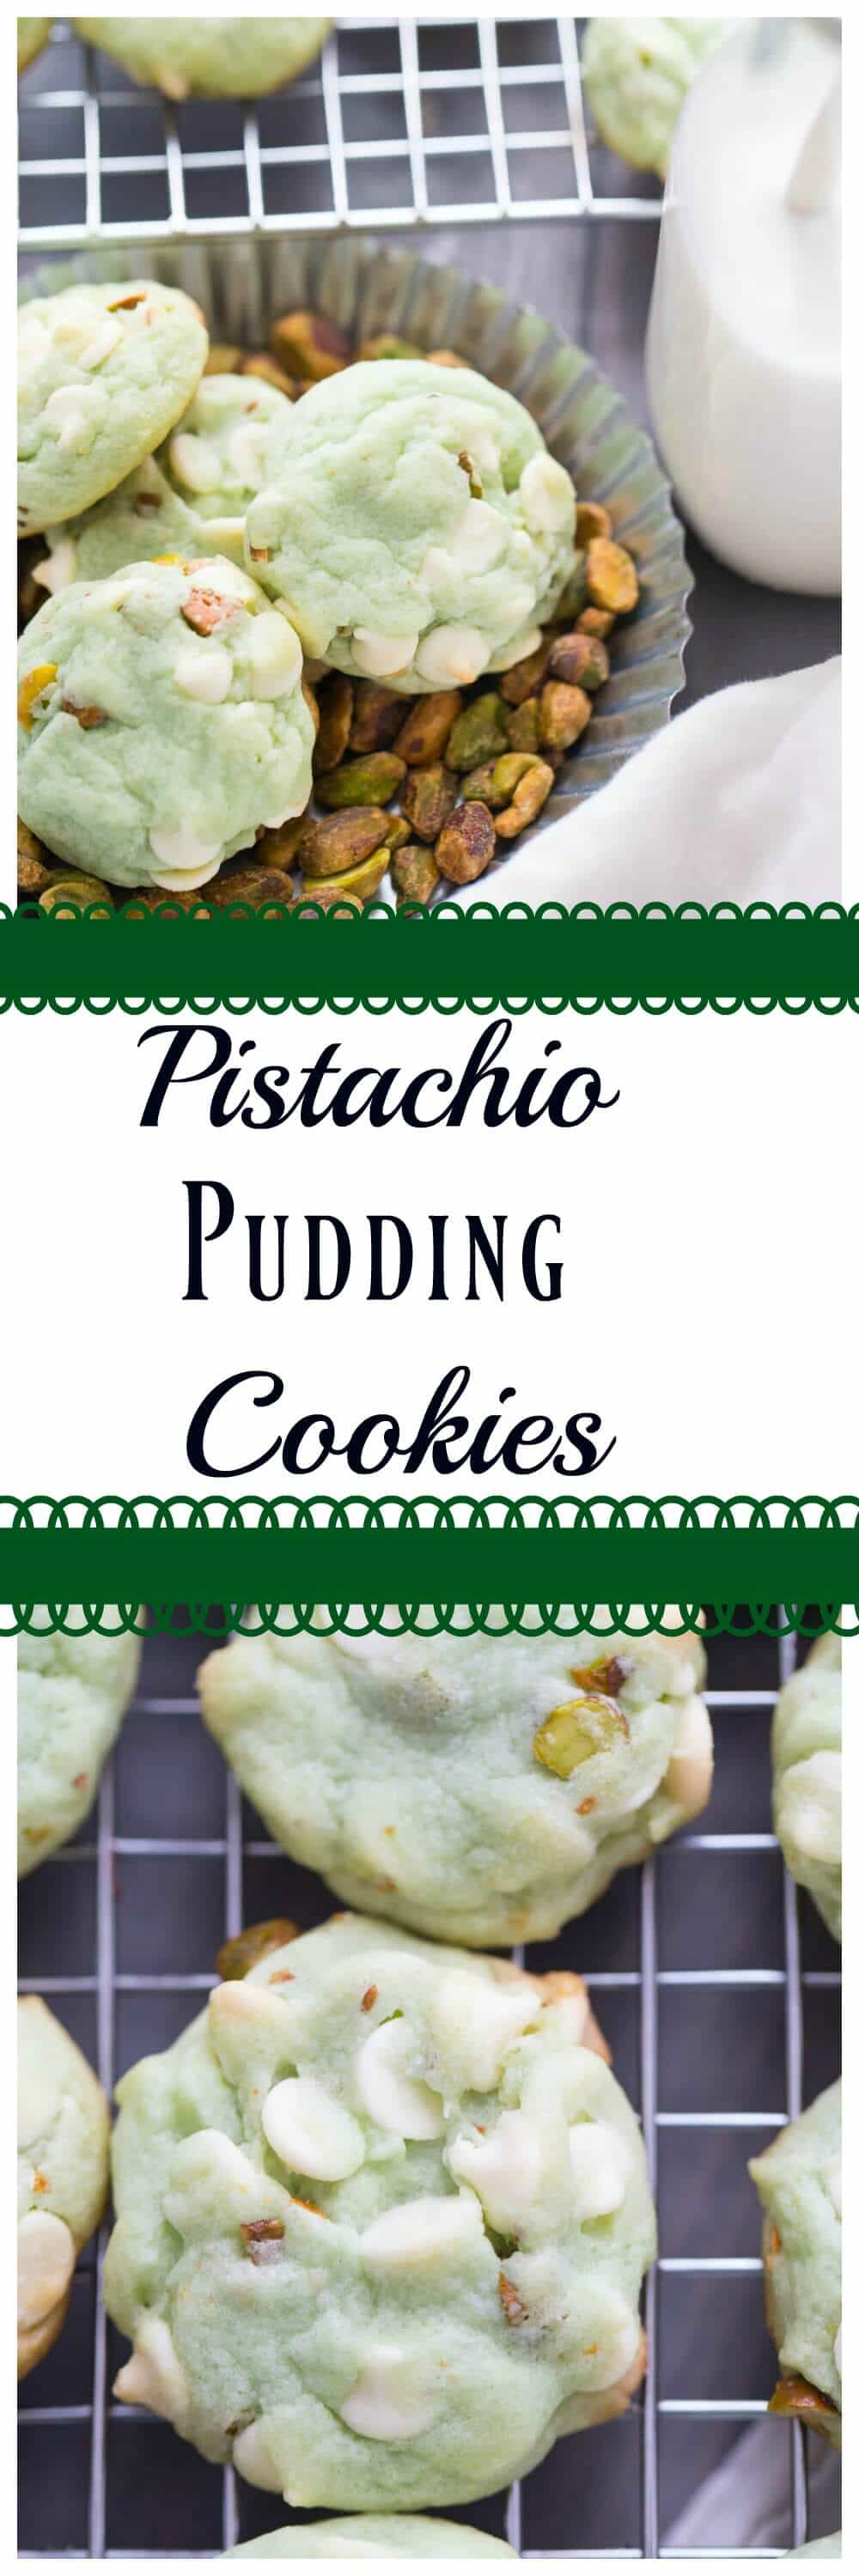 Pudding cookies are the best! They are easy to prepare and they help cookies bake up so nice and soft! This pistachio and white chocolate cookies are absolutely delightful!